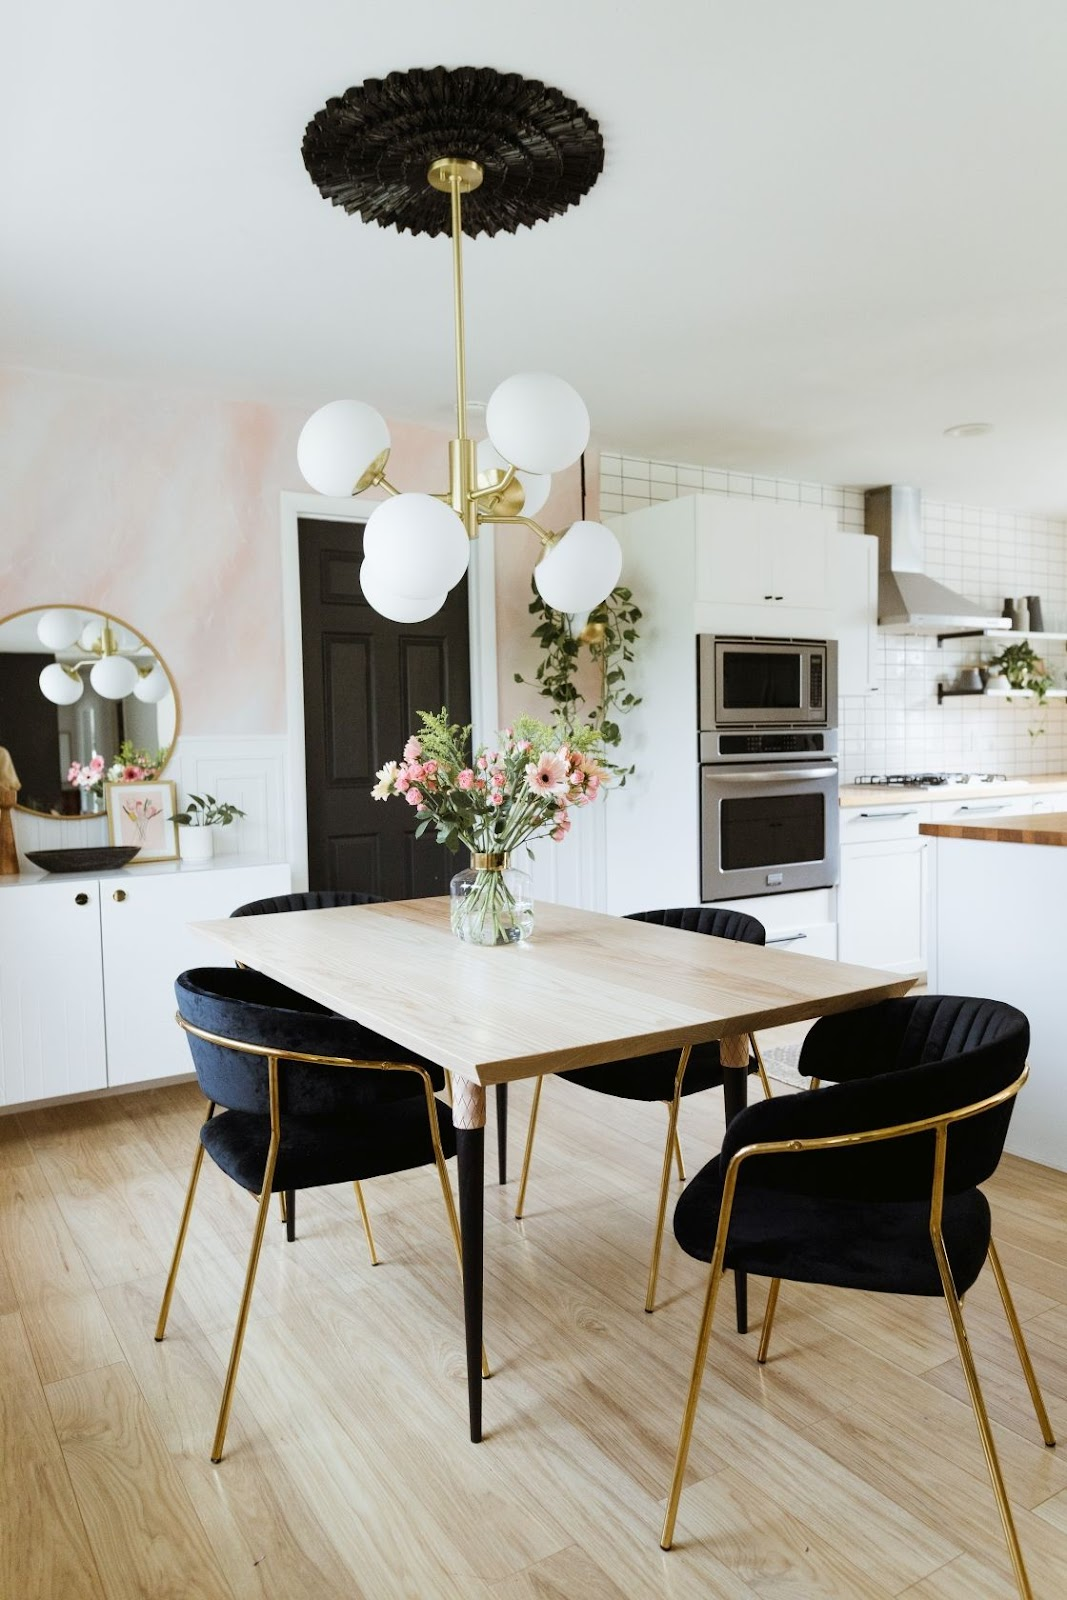 dining area next to a white kitchen with wood table, black chairs with gold accents, wood floors and a unique gold and white pendant light